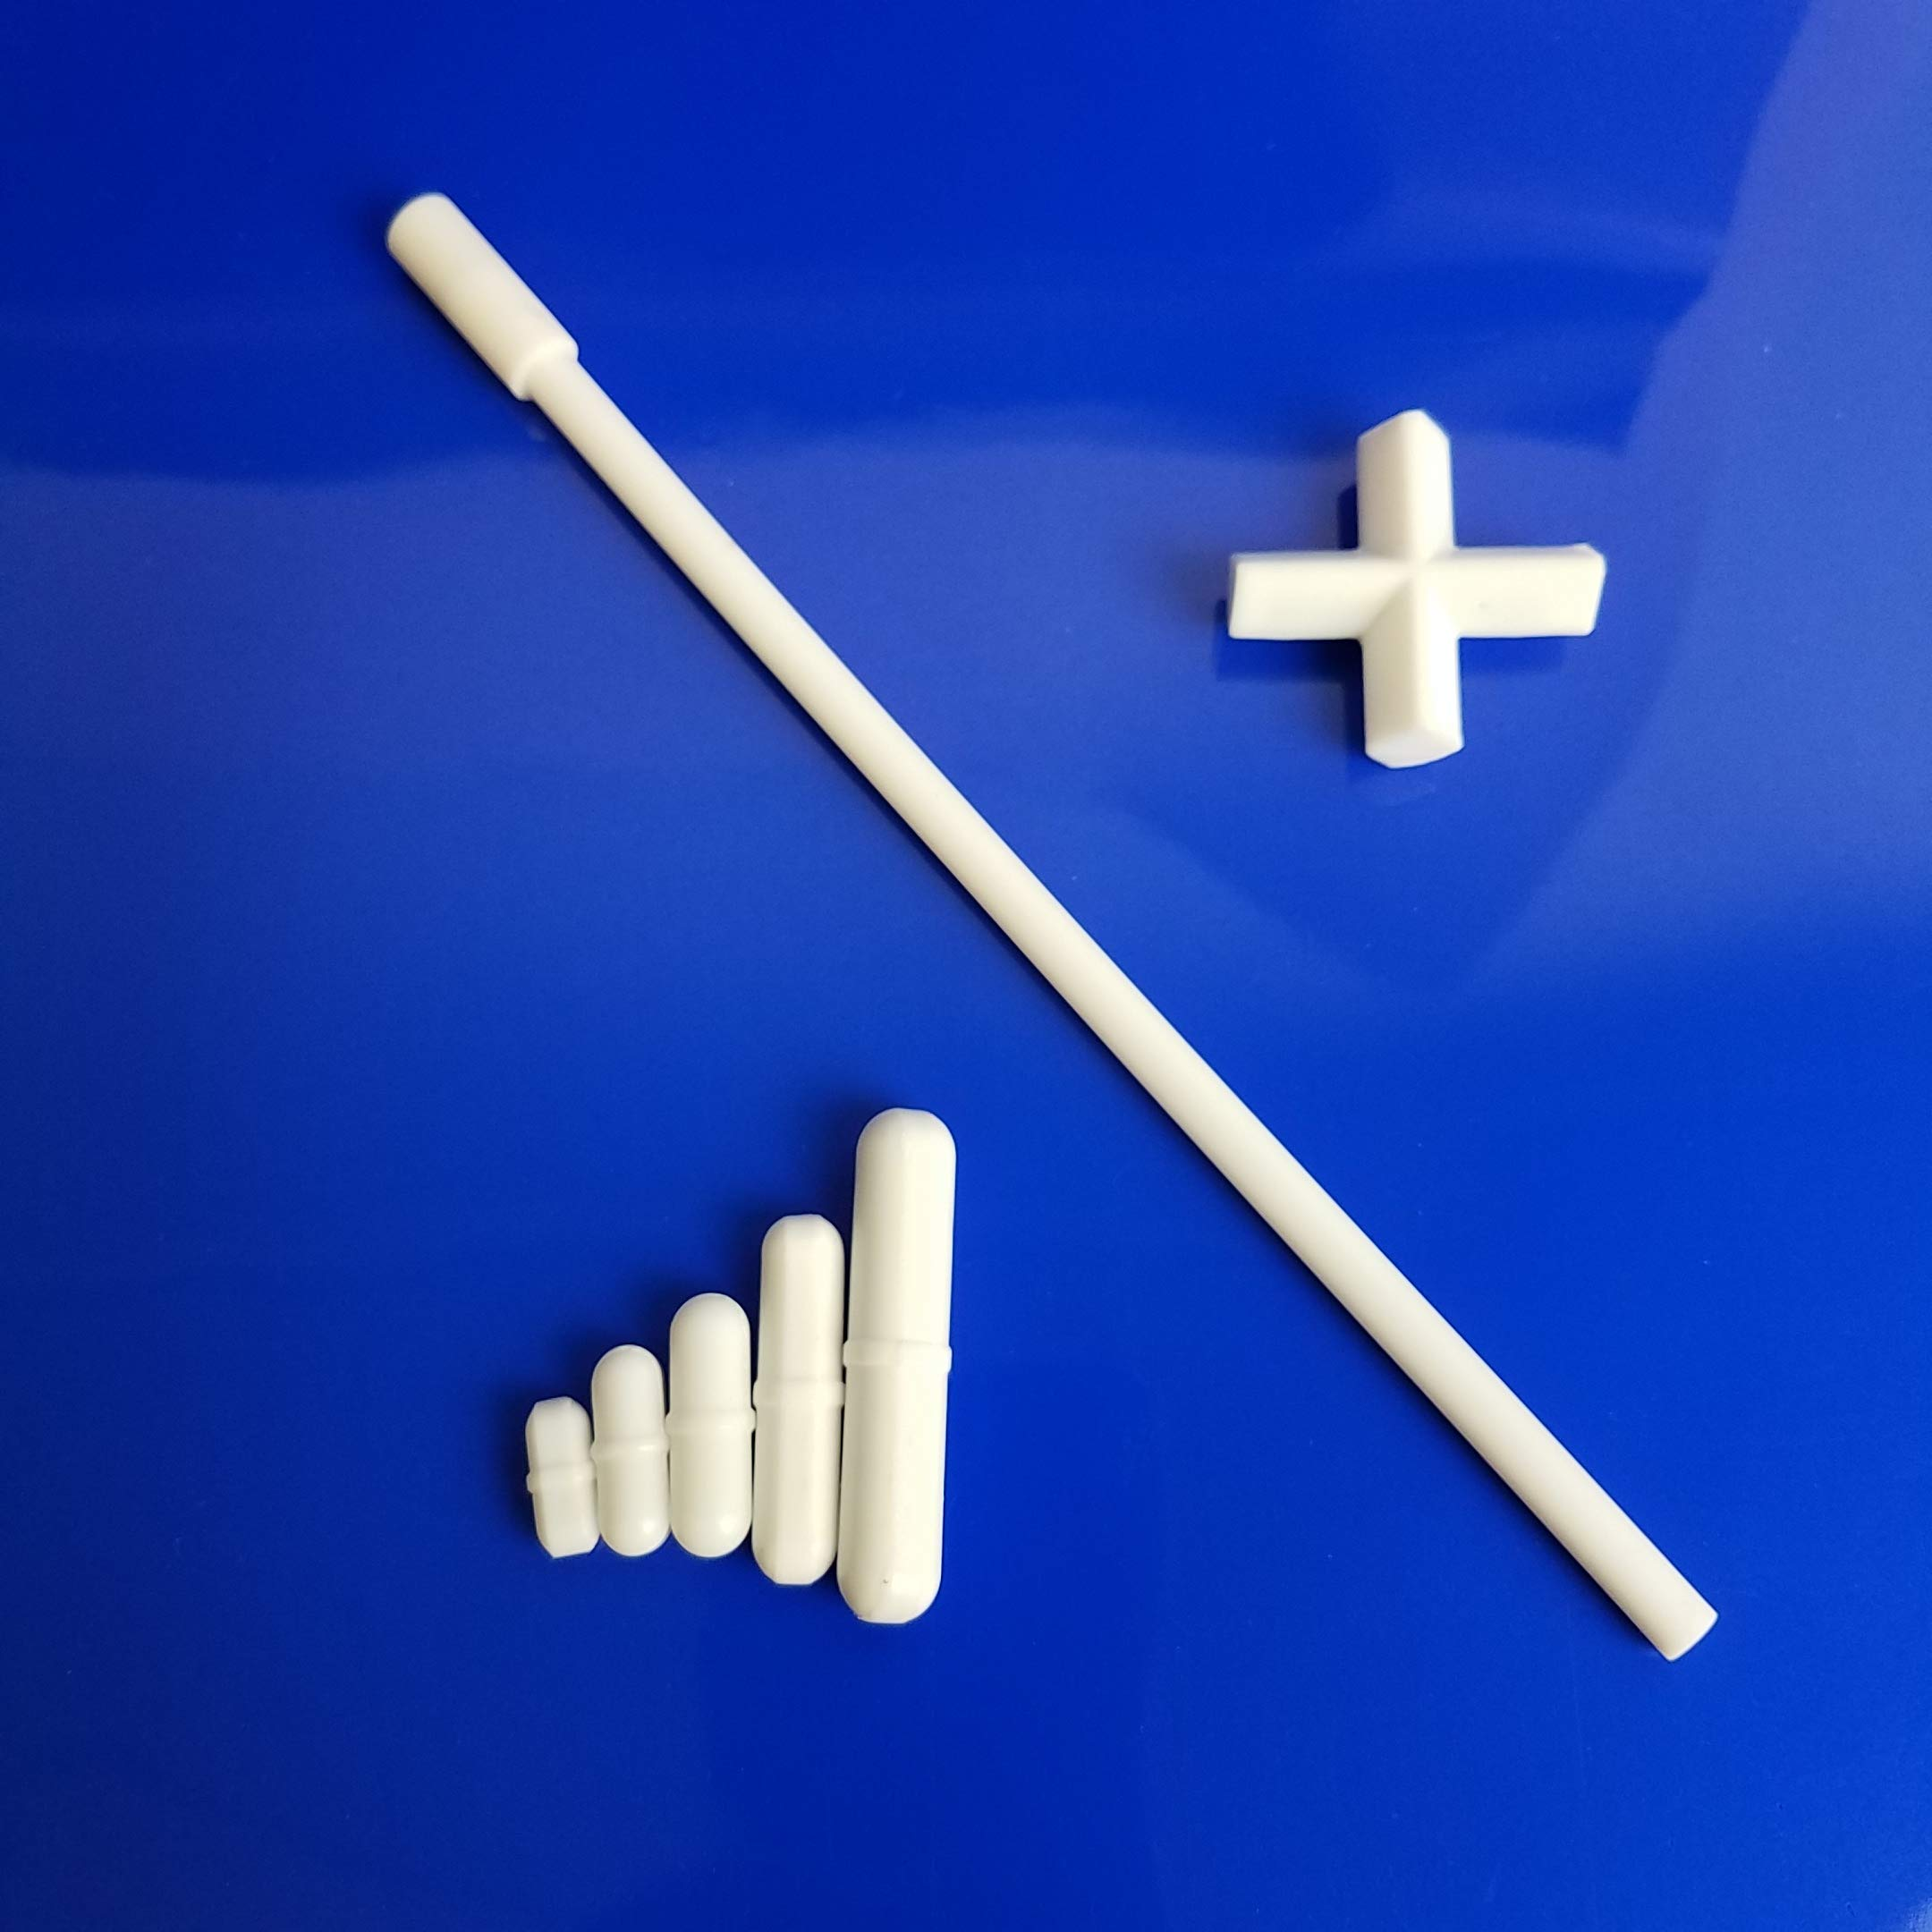 Microyn 7pcs PTFE Stir Bars Set for Magnetic Stirrer Mixer (Five Straight Bars of 15,20,25 35 and 50 mm, One Cross-Shaped Bar of 38 mm, and One Stir Bar Retriever of 200 mm) by Microyn